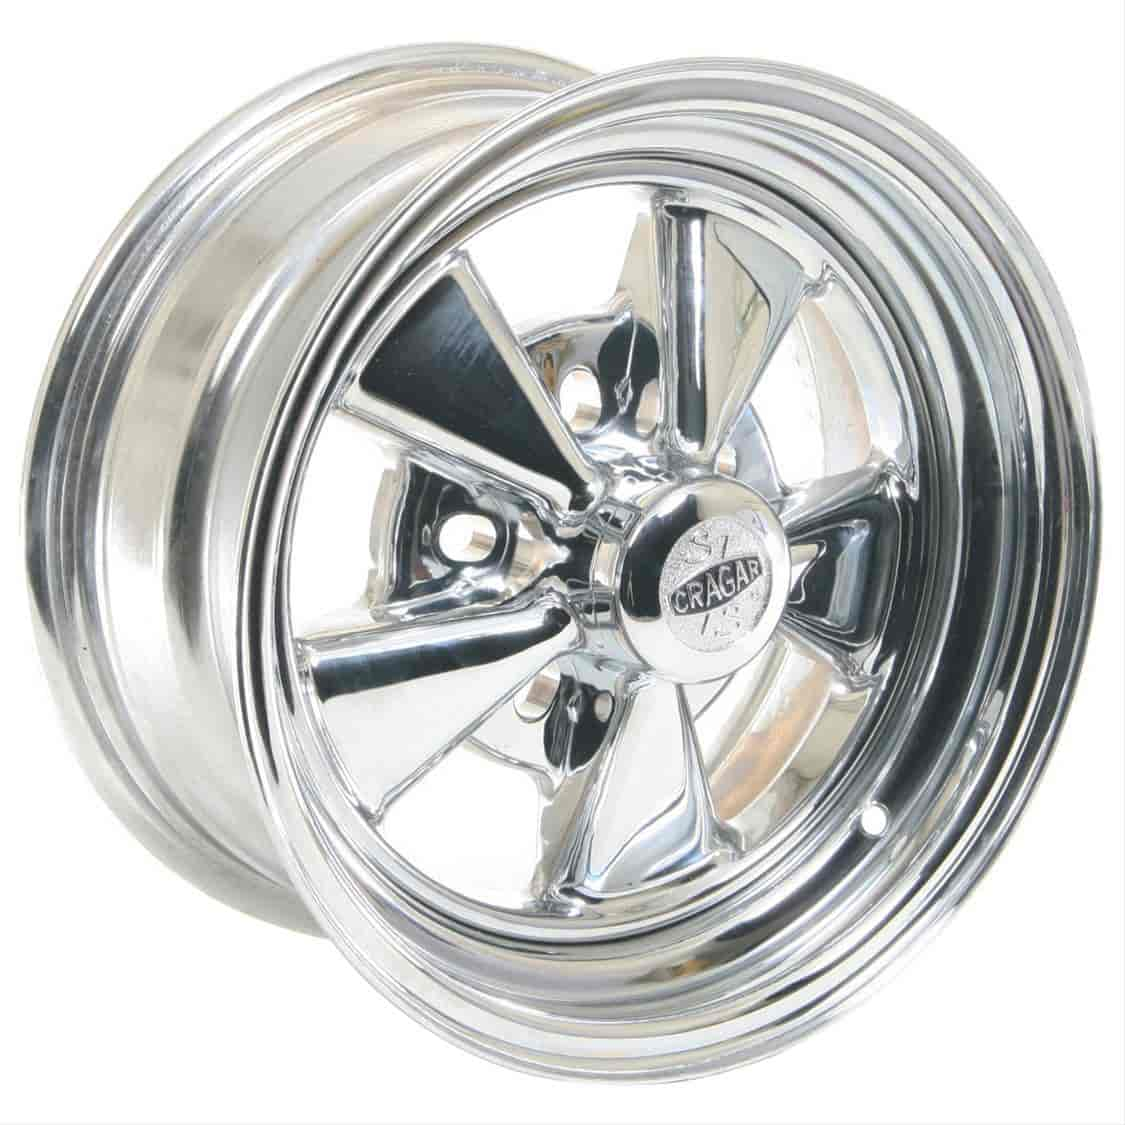 Cragar 08155 - Cragar 08/61 Series S/S Super Sport Wheels